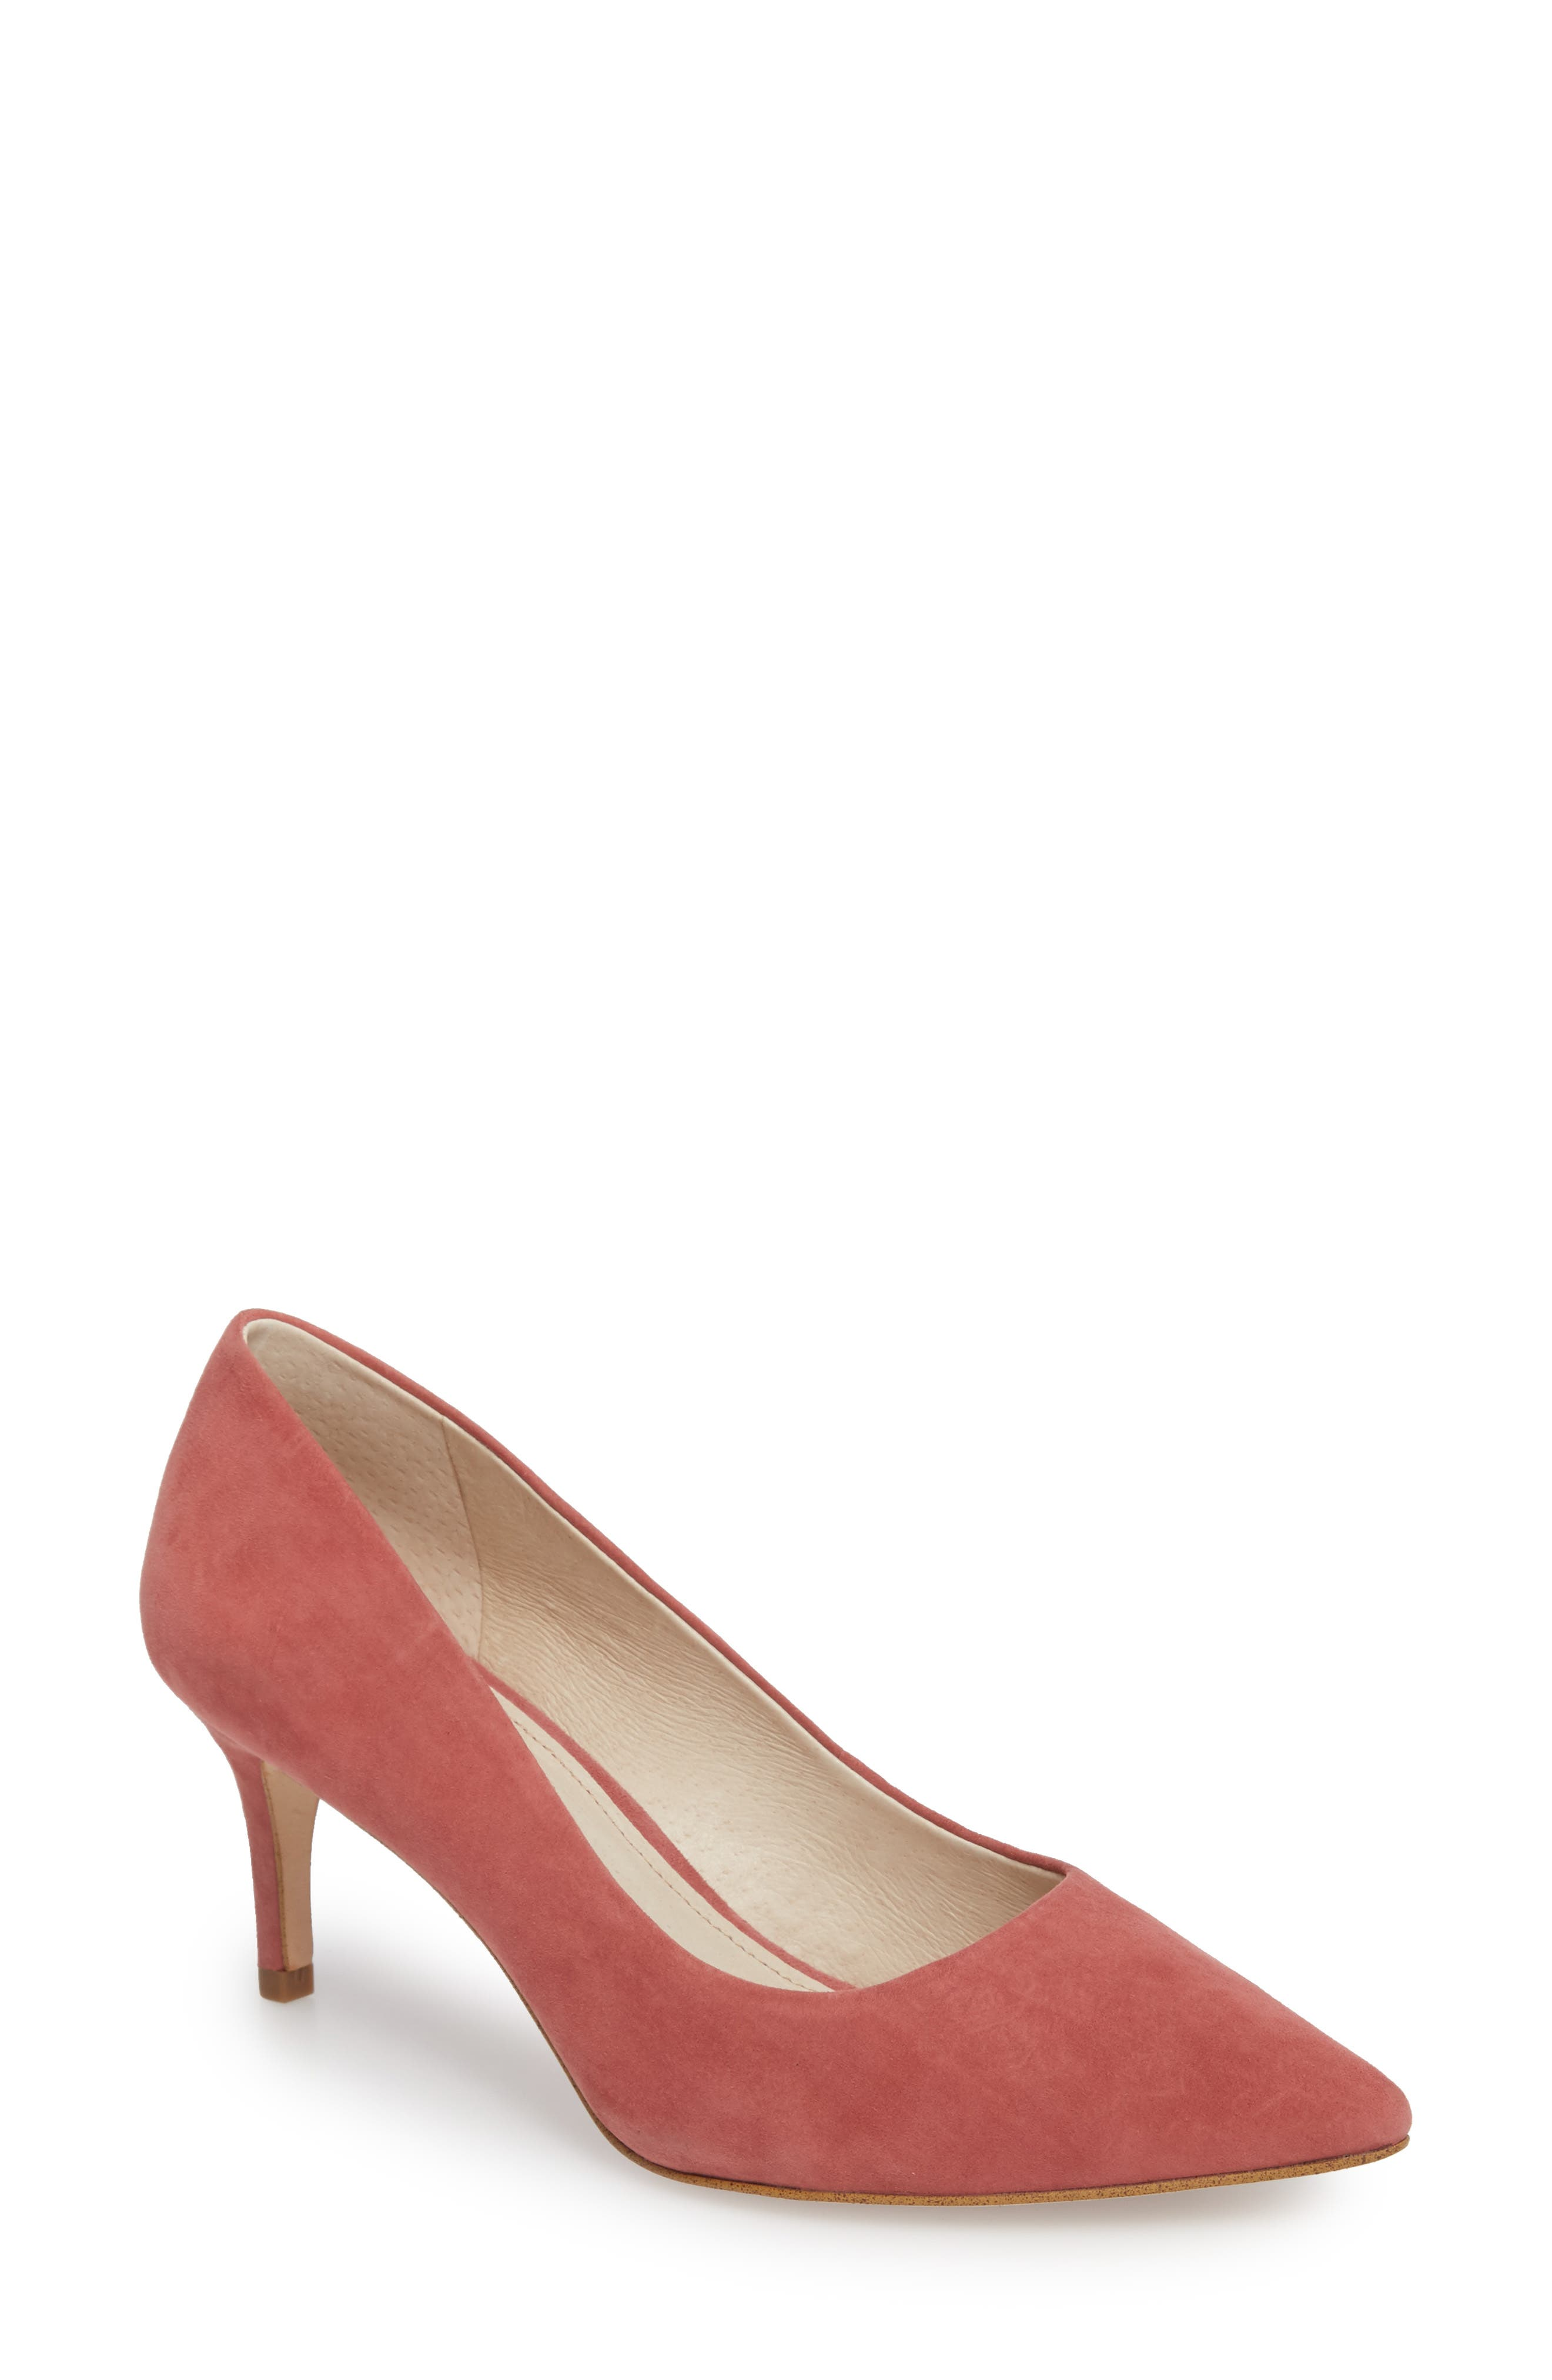 Louise et Cie Jordyna Pump (Women)